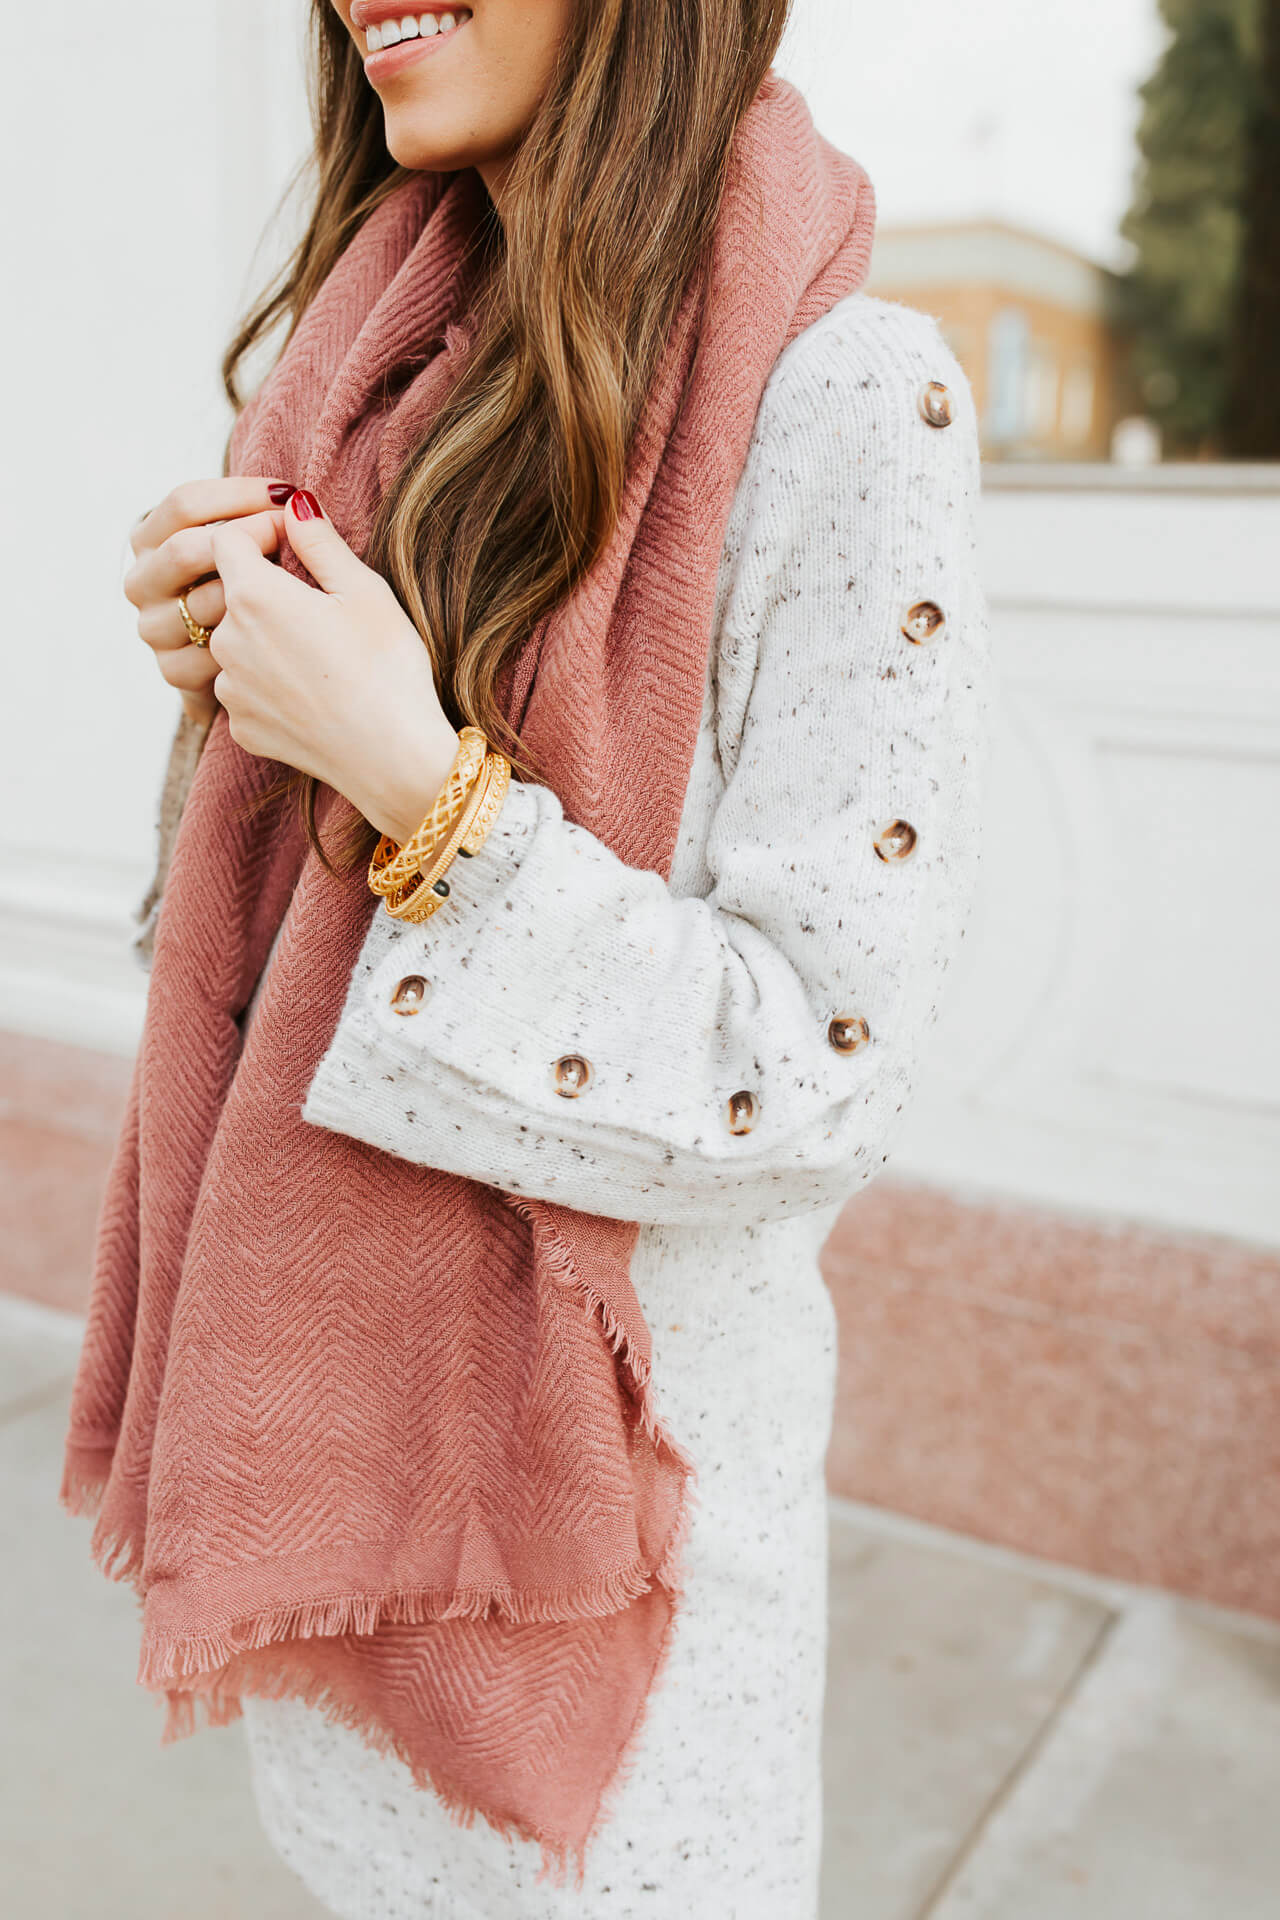 This fall maternity outfit is so warm and cozy! - M Loves M @marmar